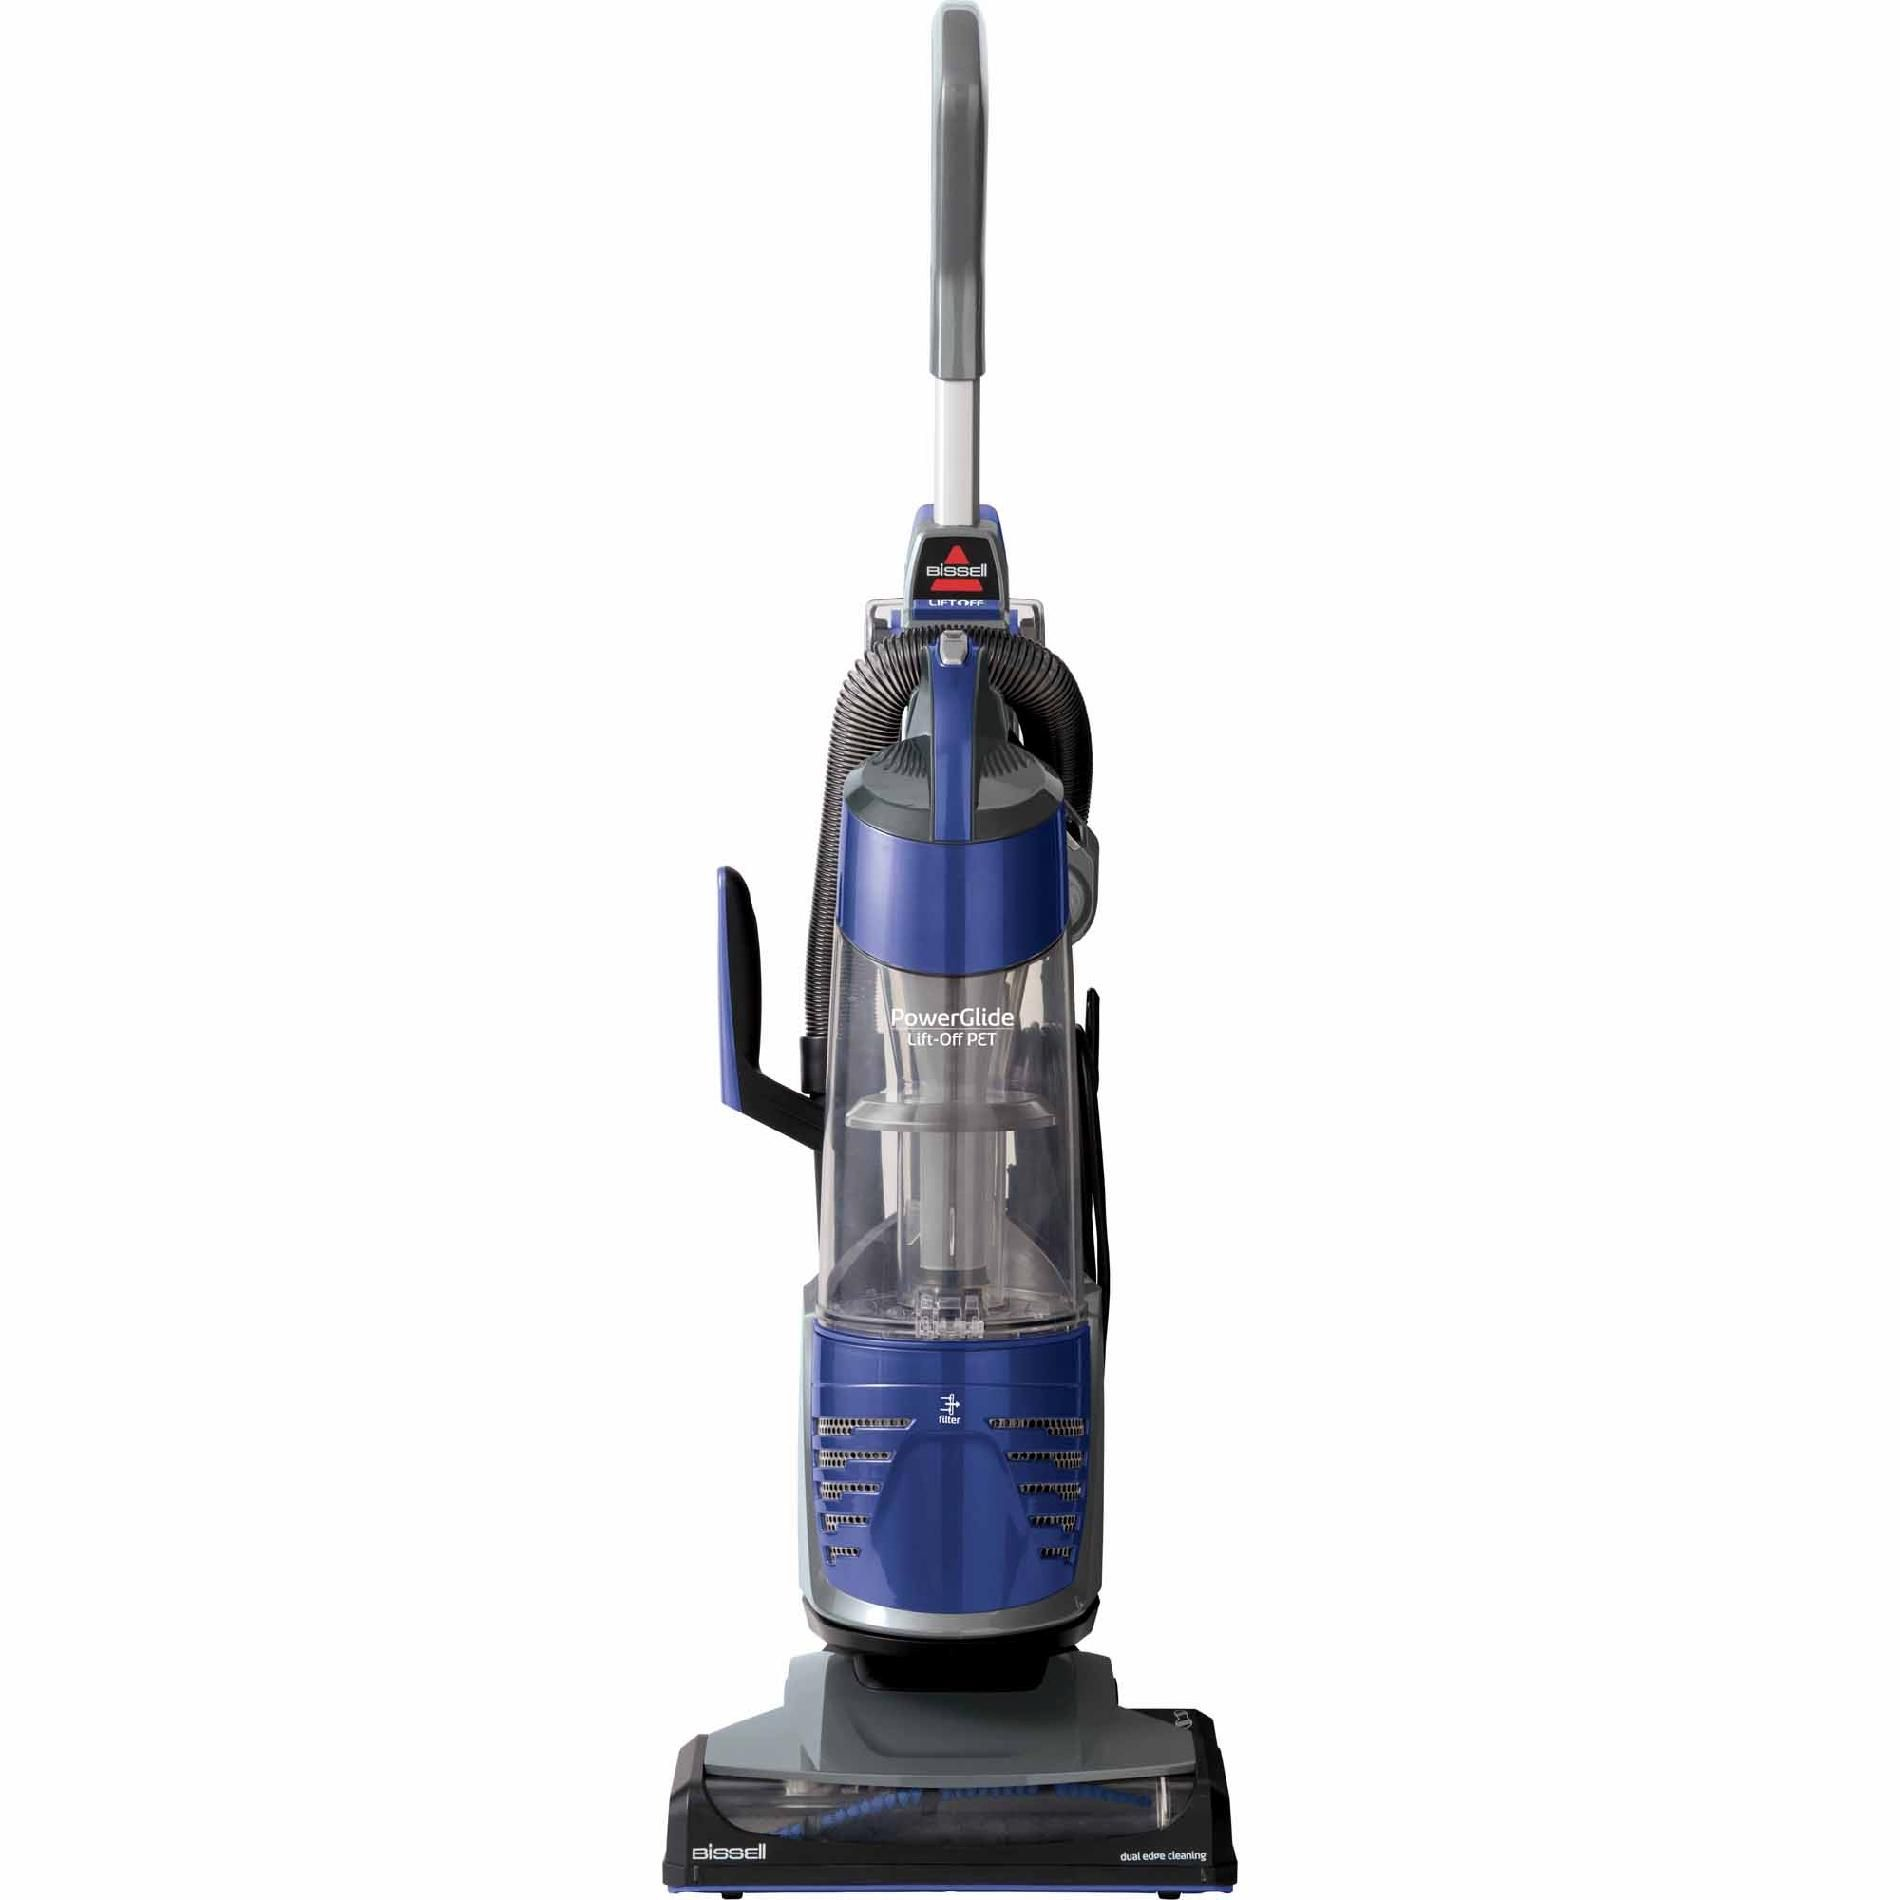 27636 Powerglide Deluxe Pet Vacuum With Lift Off Technology Kmart Upright Vacuums Vacuums Pet Vacuum